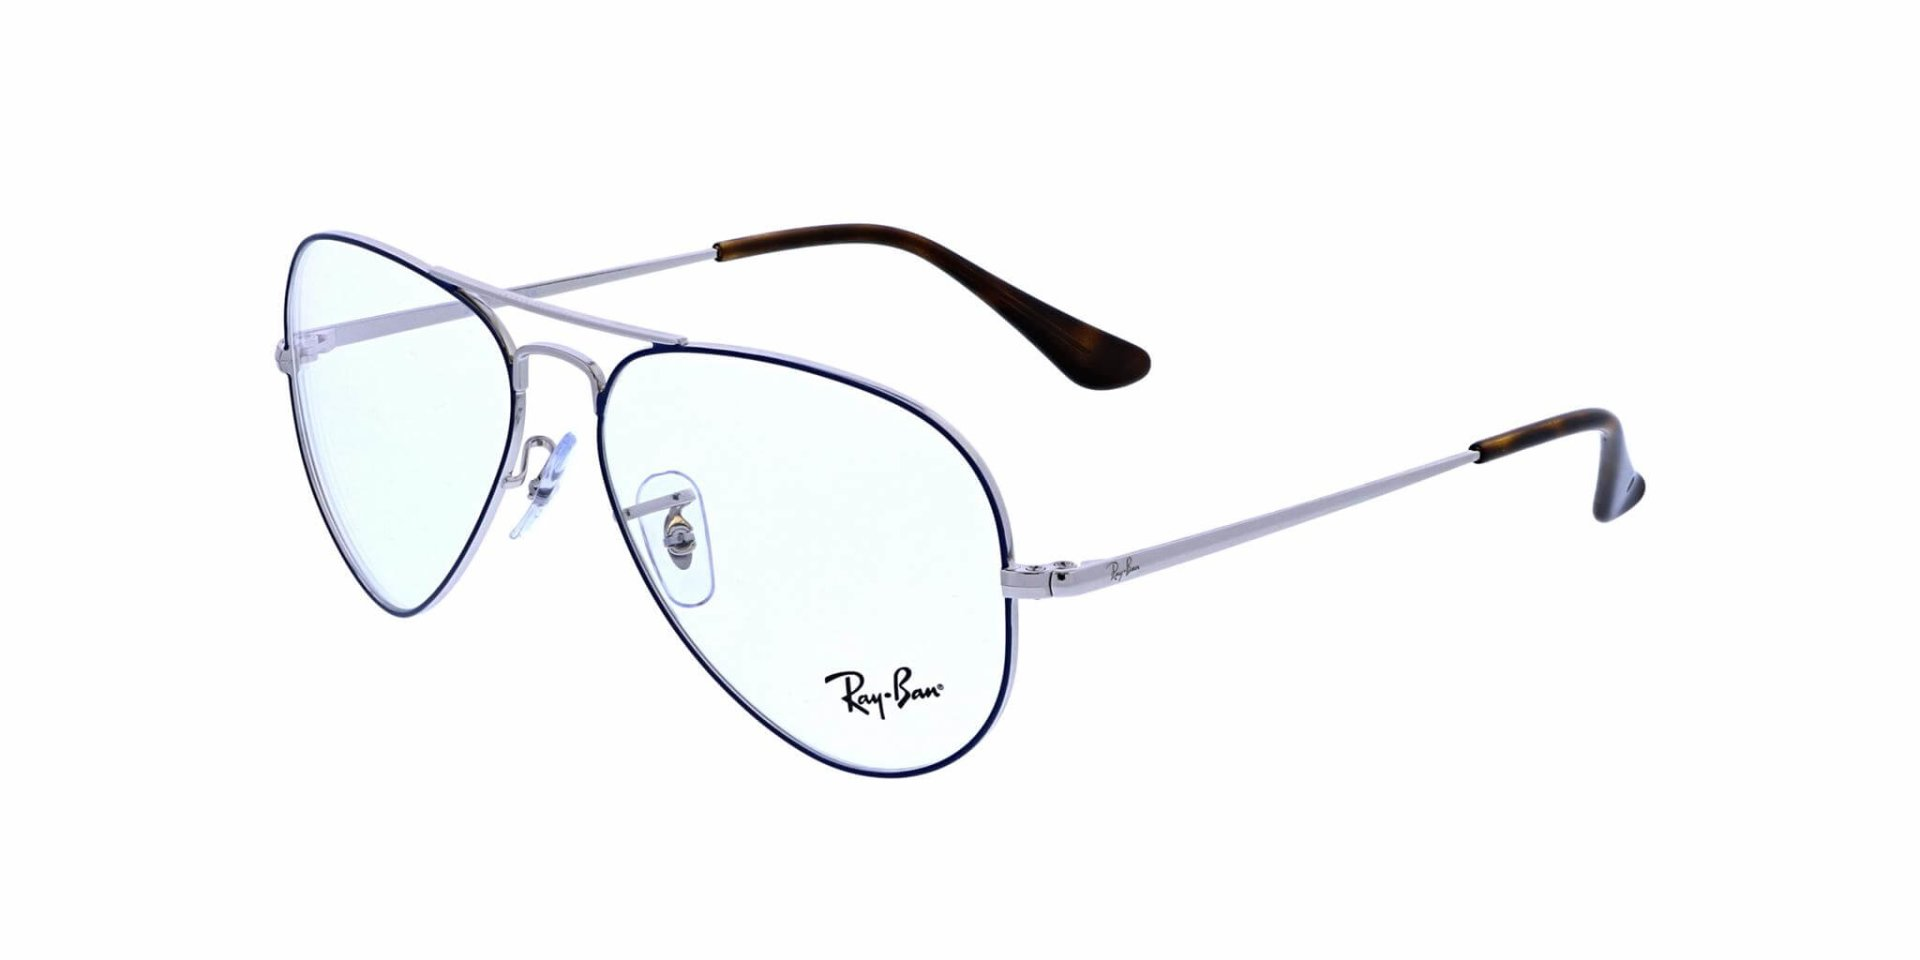 5124cc58aa1 1920x960 Sunglasses Ray Ban Opticlasa